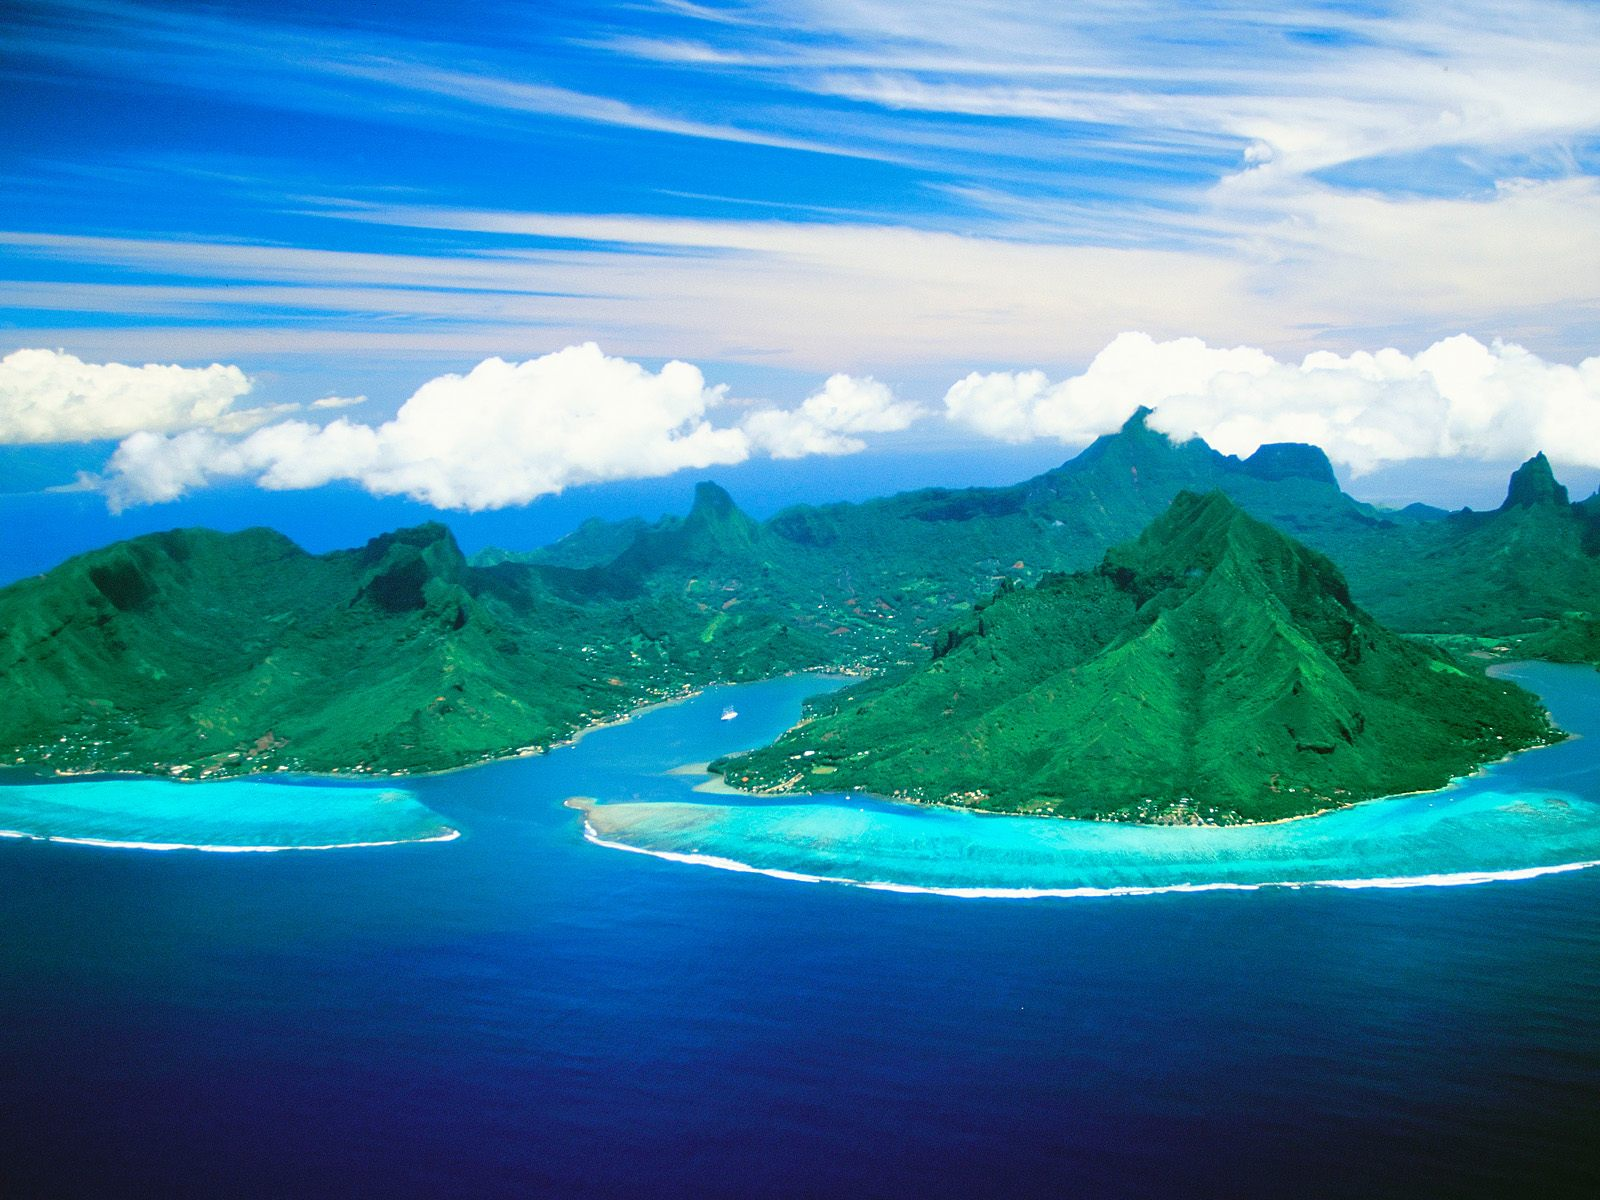 Cook_s_Bay_and_Opunohu_Bay_Moorea_Island_French_Polynesia.jpg